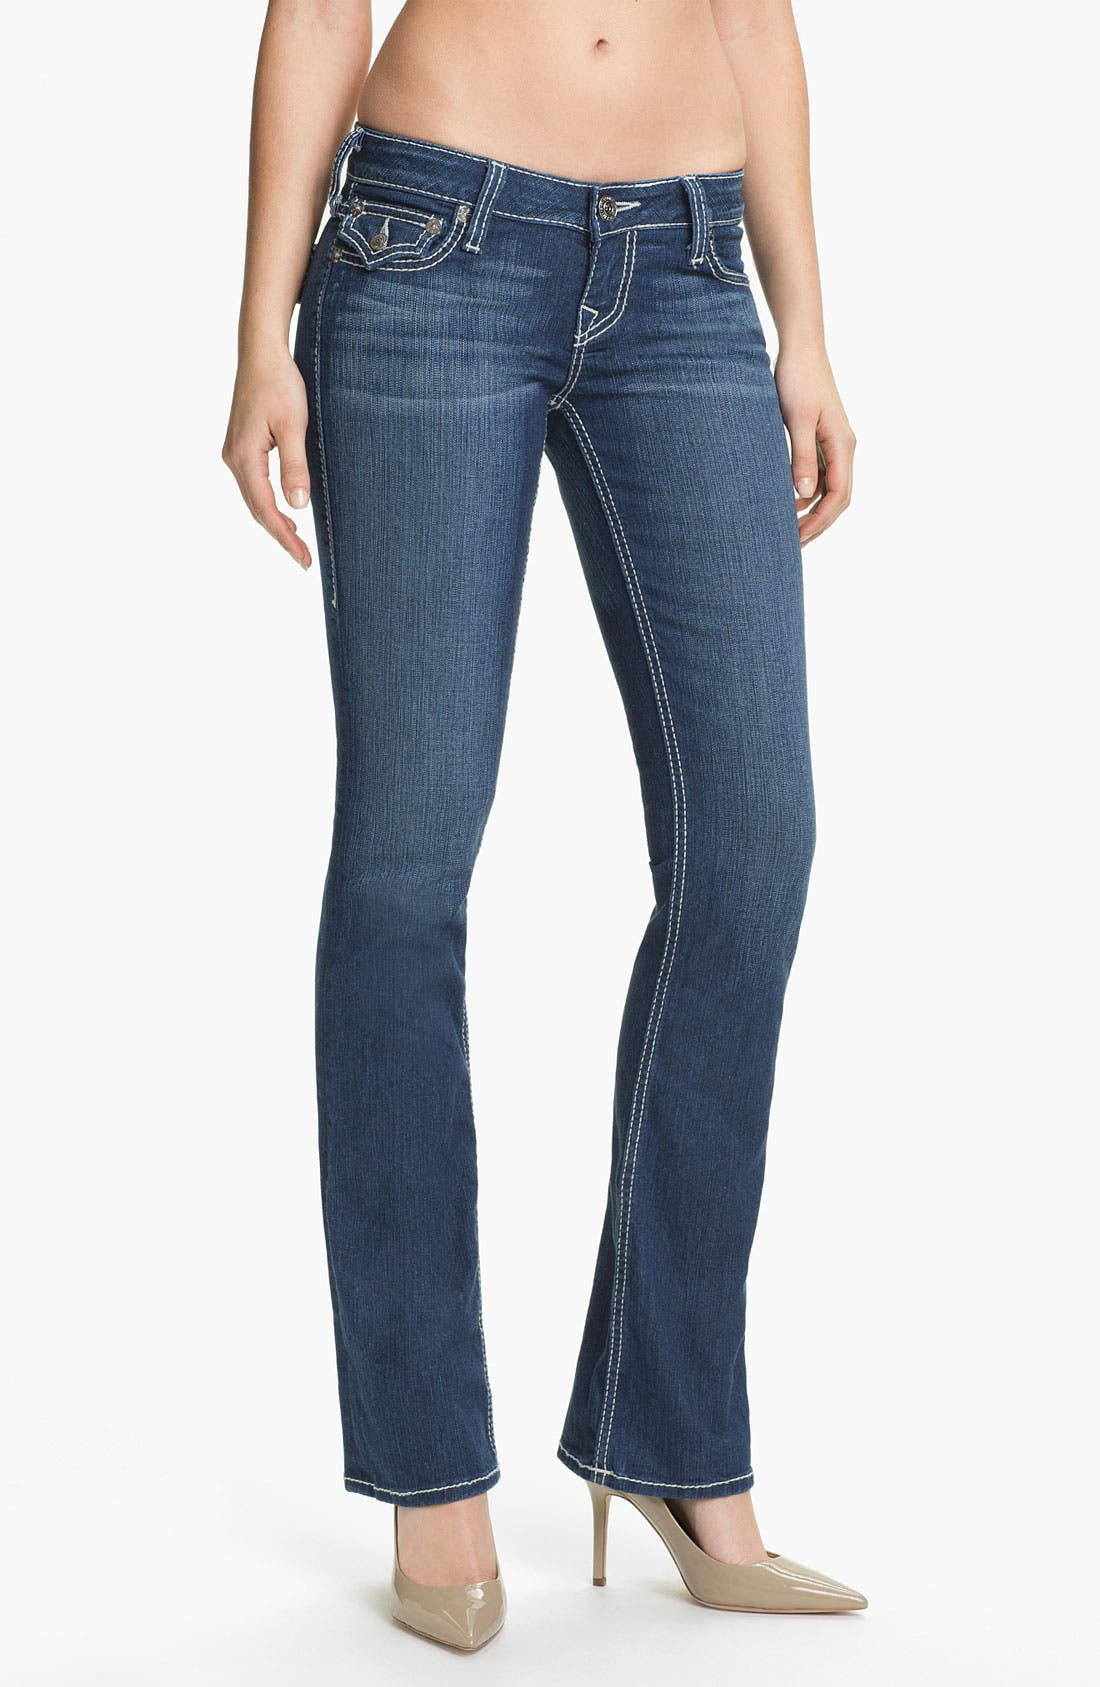 Alternate Image 1 Selected - True Religion Brand Jeans 'Becky' Bootcut Jeans (Rosewood)